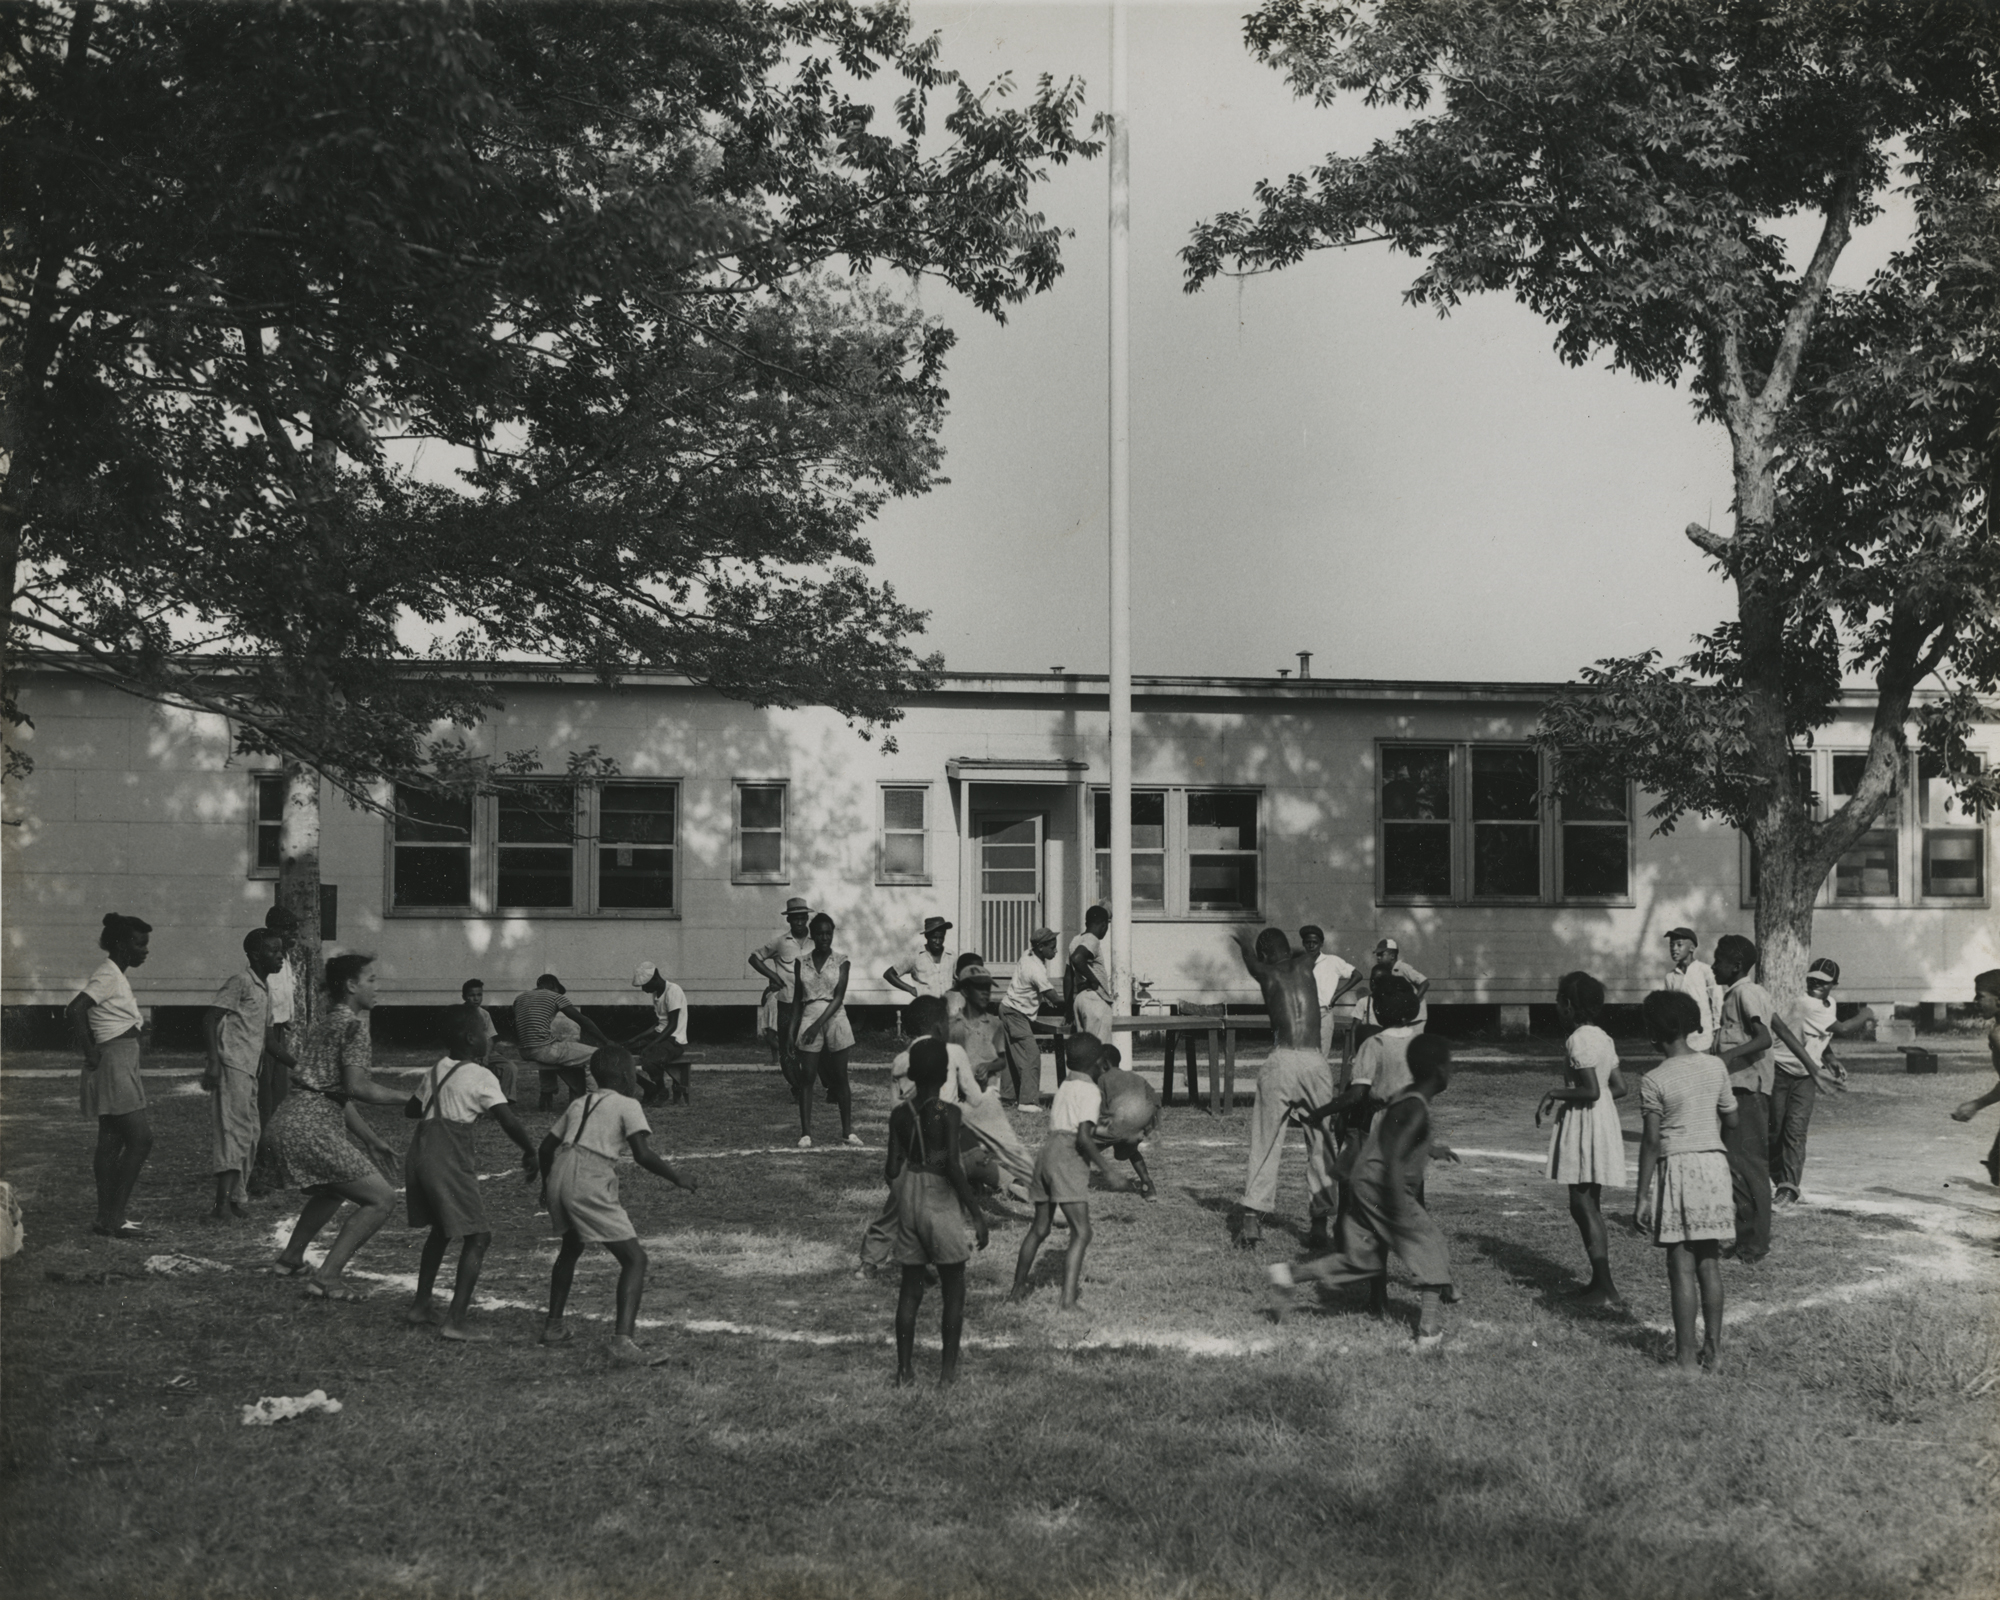 Children playing in a circle in front of a building. New Orleans (La.) Recreation Dept. Scrapbook photographs, 1947-1948